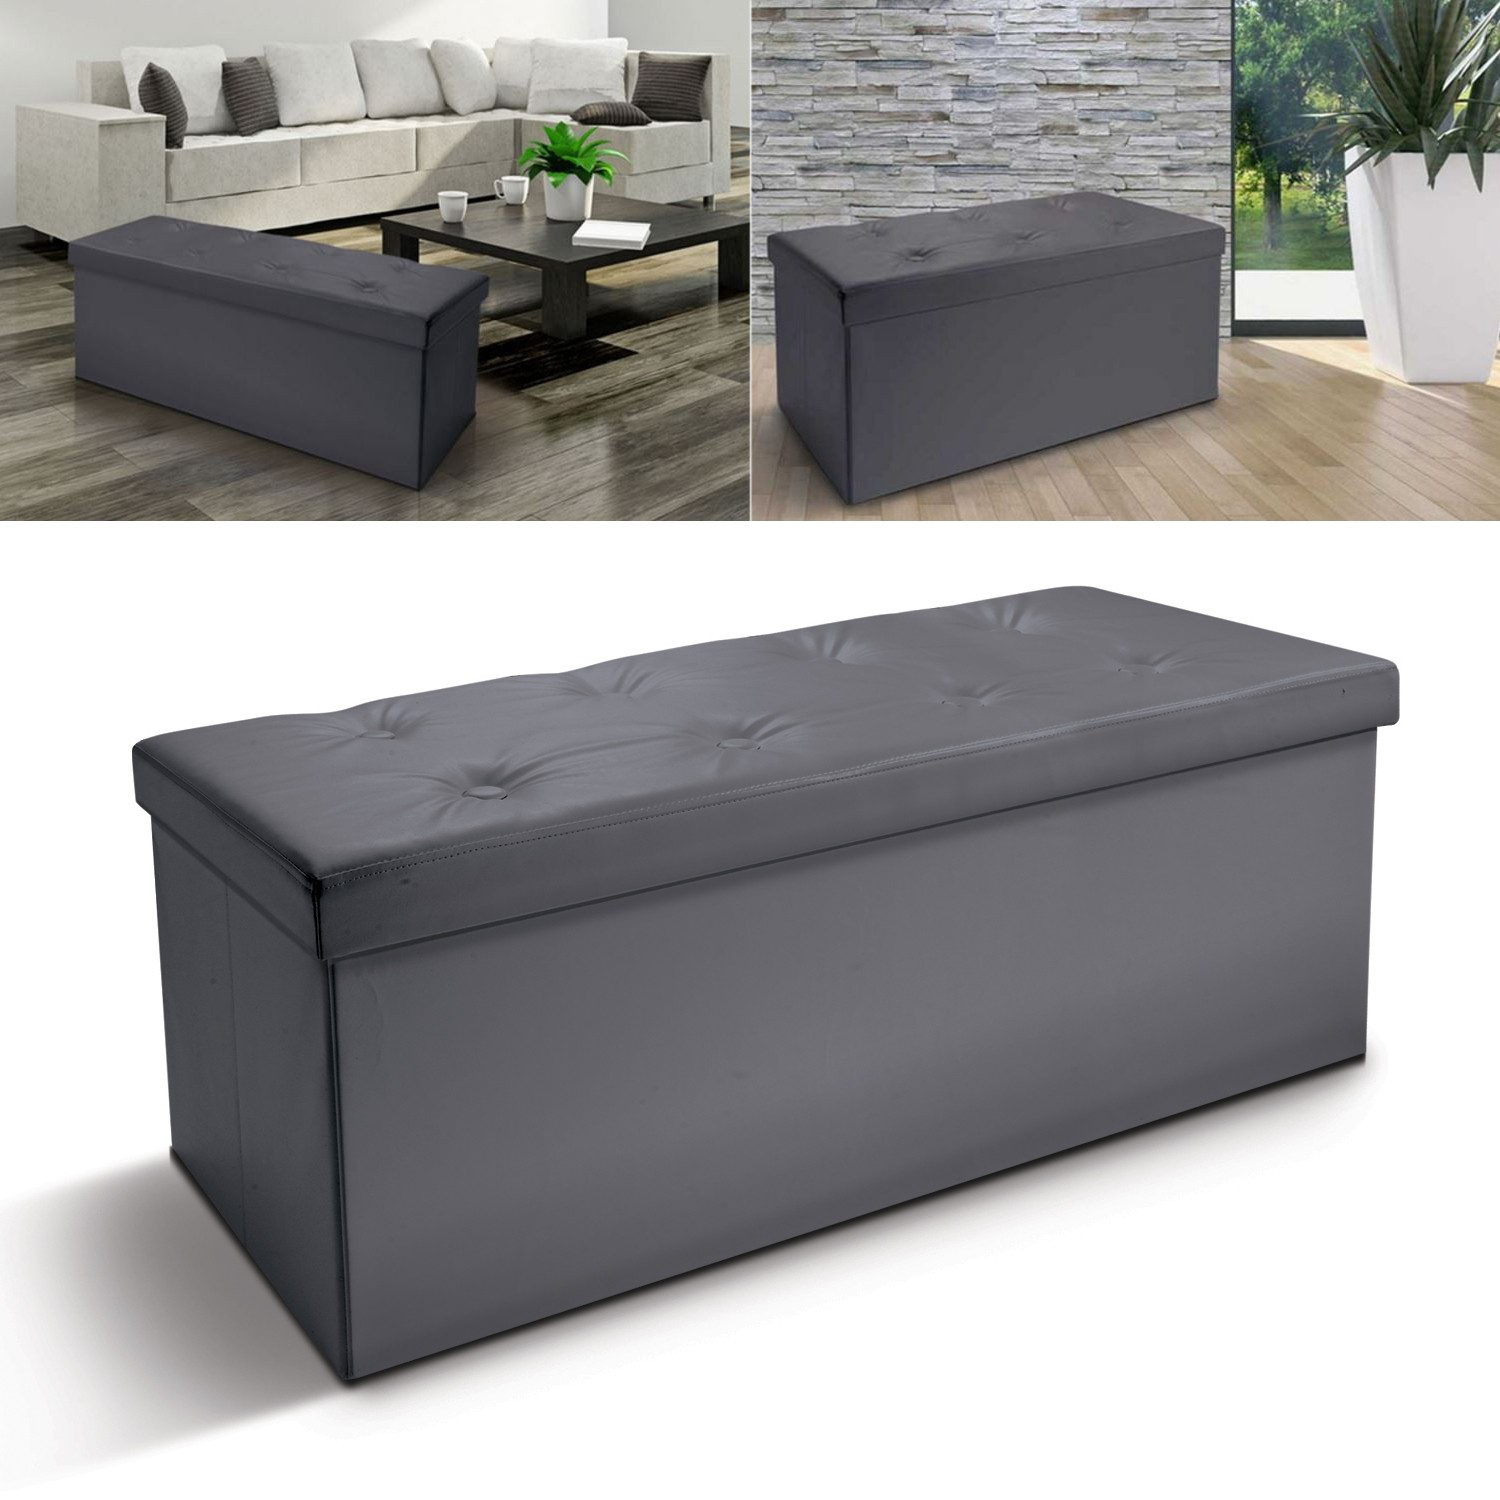 banc coffre rangement pvc gris 76x38x38 cm pliable. Black Bedroom Furniture Sets. Home Design Ideas